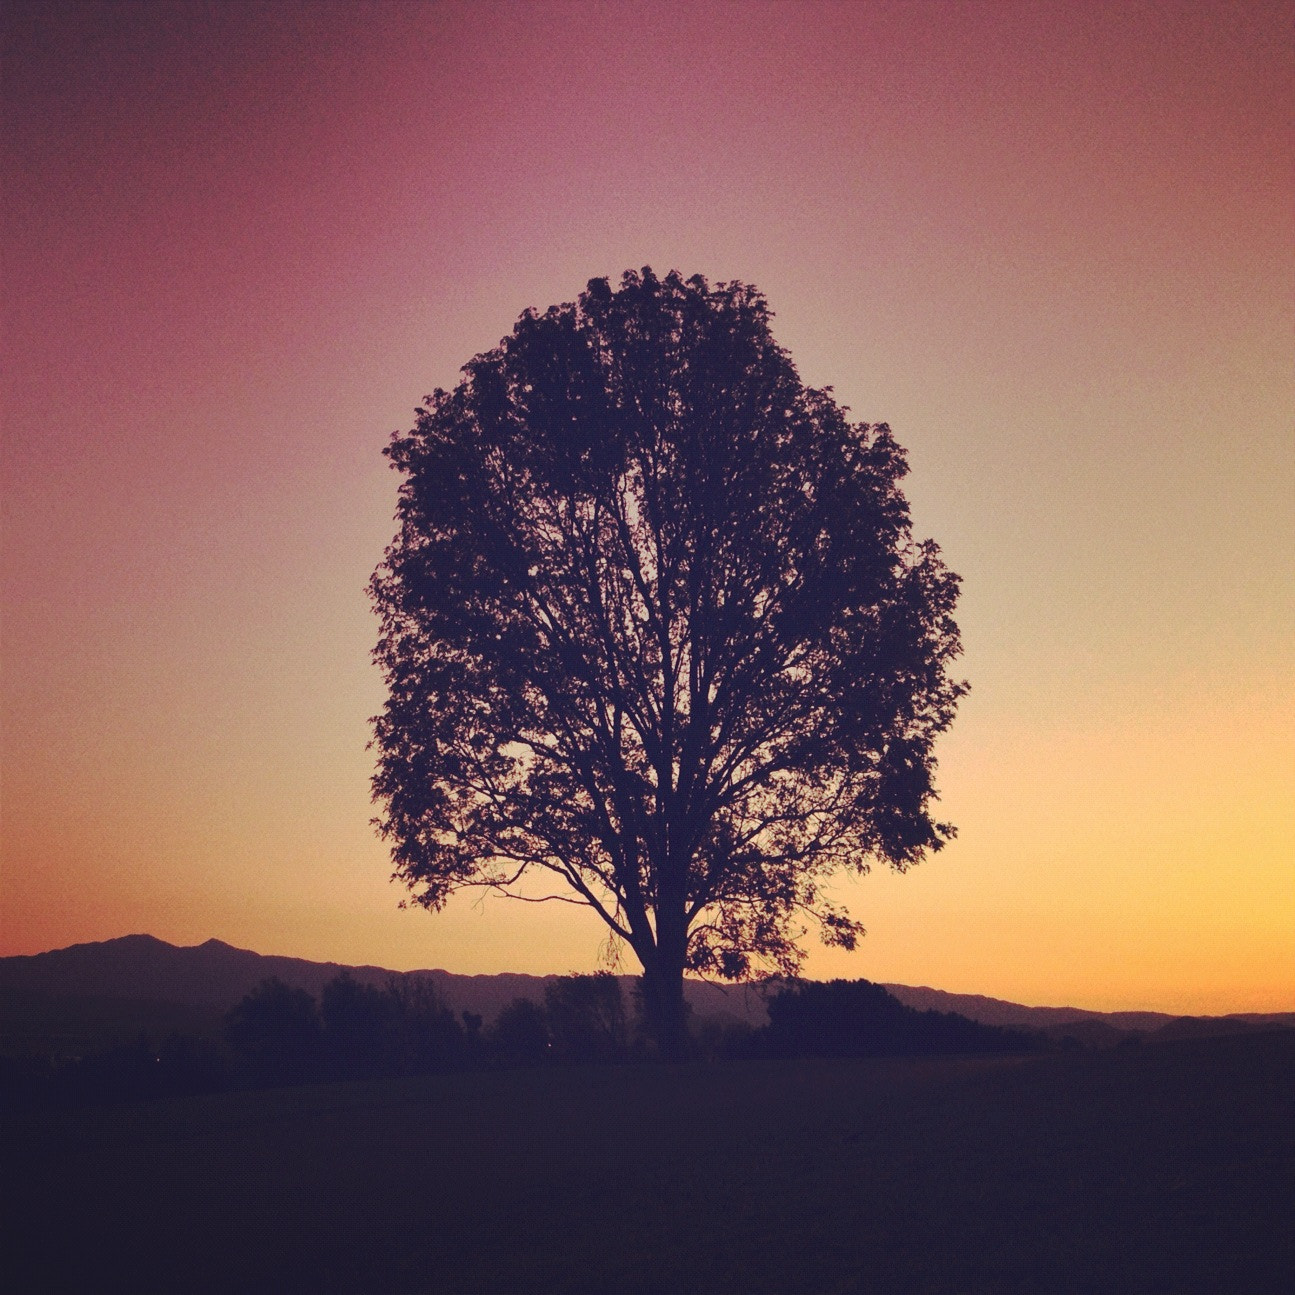 Photograph Tree of Life by Dirk Dallas on 500px